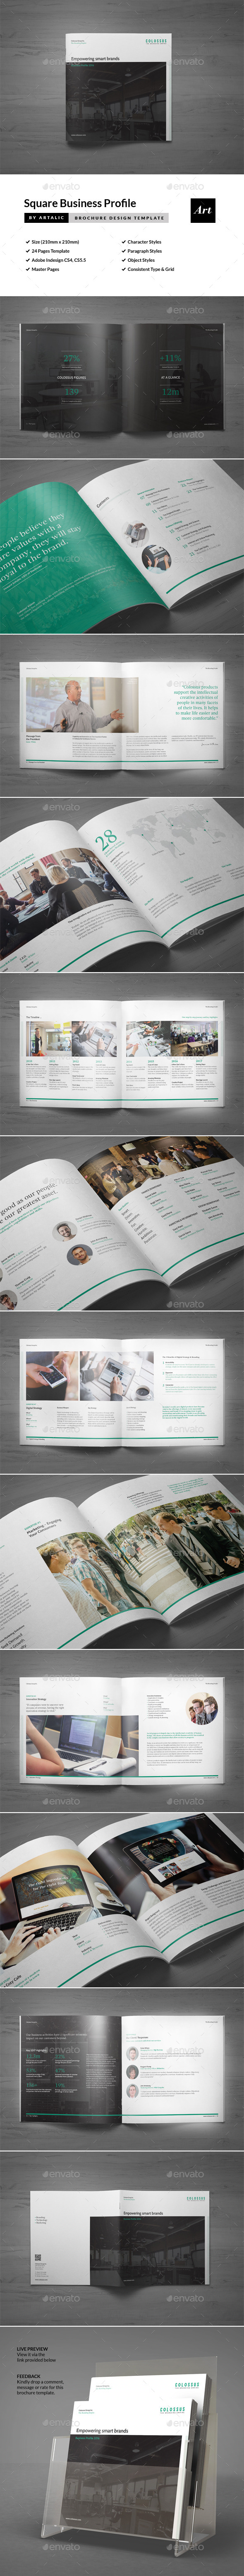 Corporate Brochure (Square Format) - Corporate Brochures